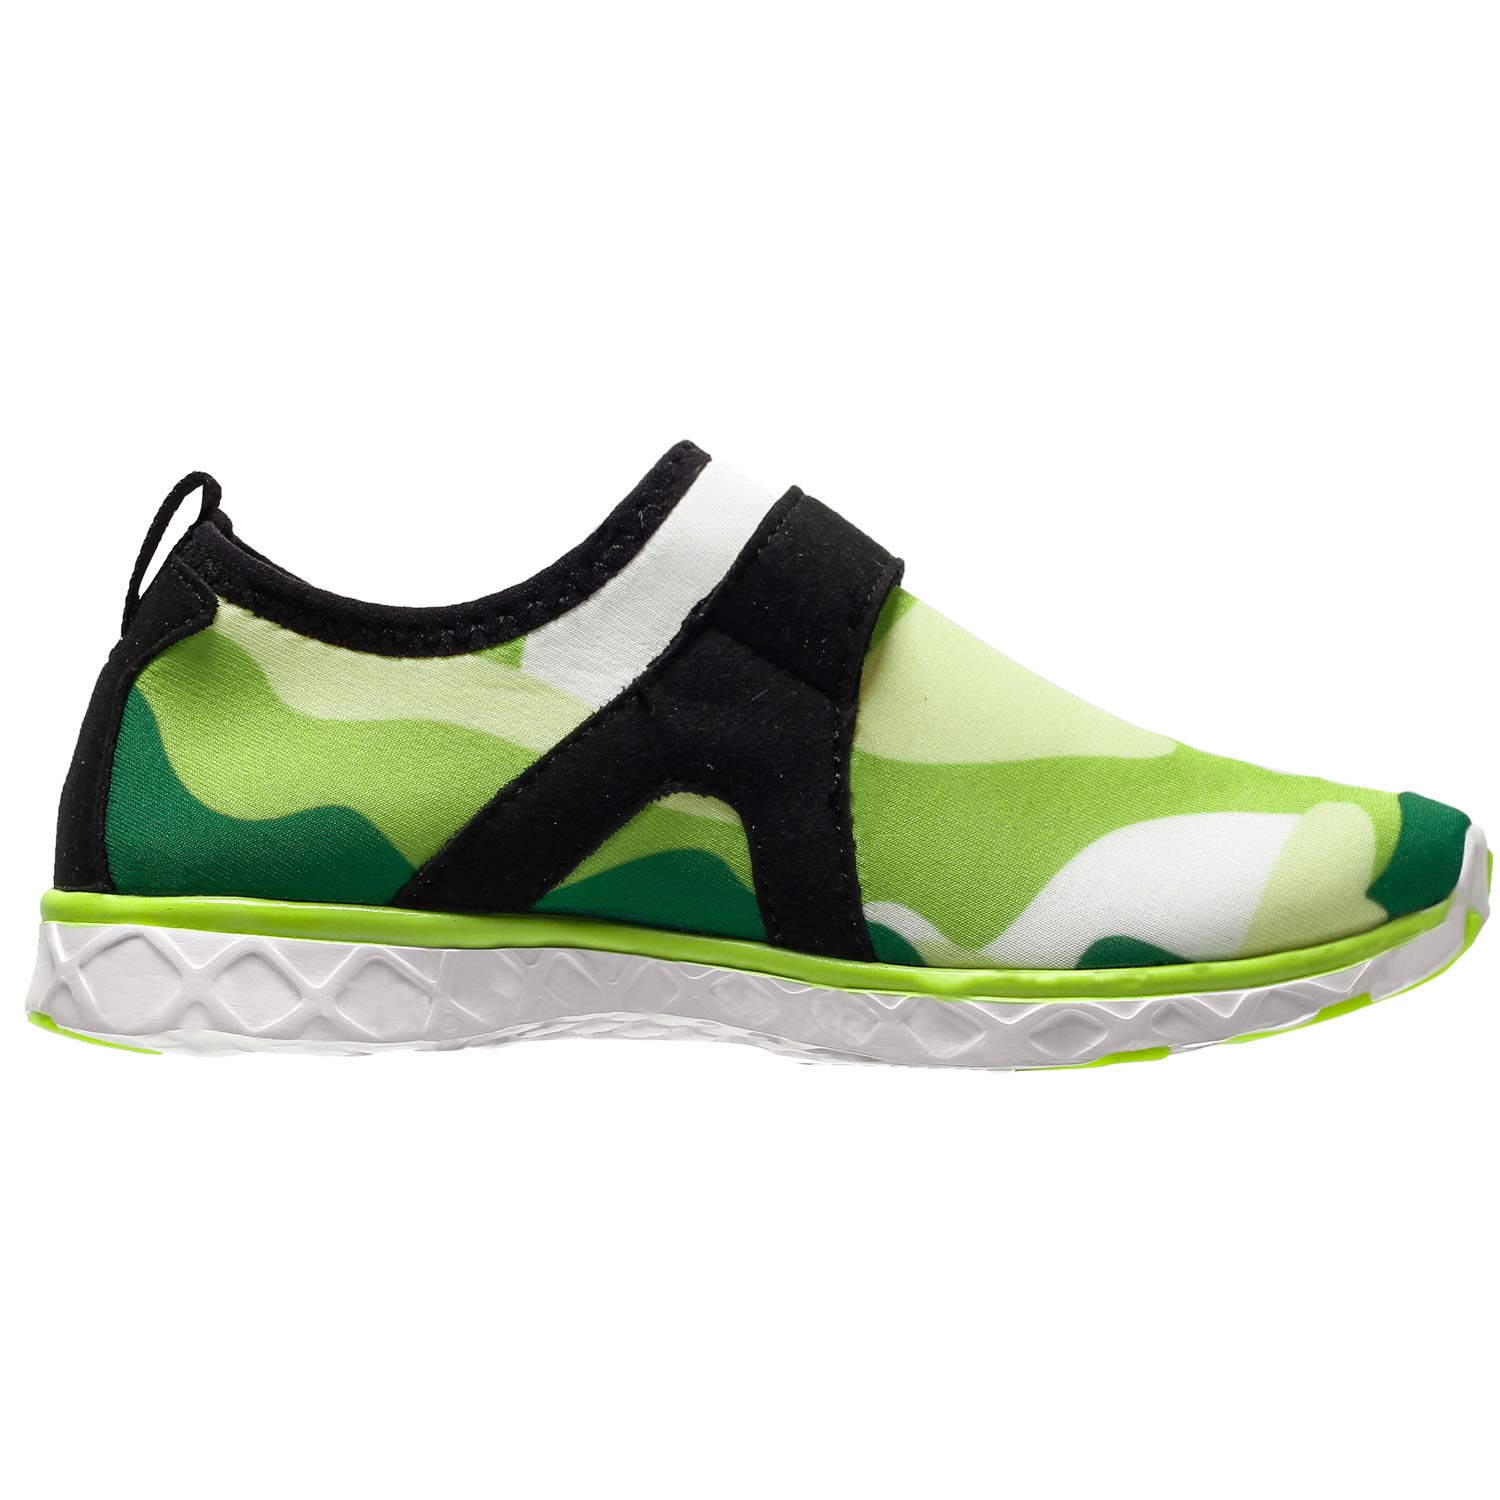 AMAWEI Boys Girls Water Shoes for Kids,Lightweight Comfort Sole Sports Shoes,Slip-on Quick Dry Aqua Athletic Sneakers Swim Beach Shoes